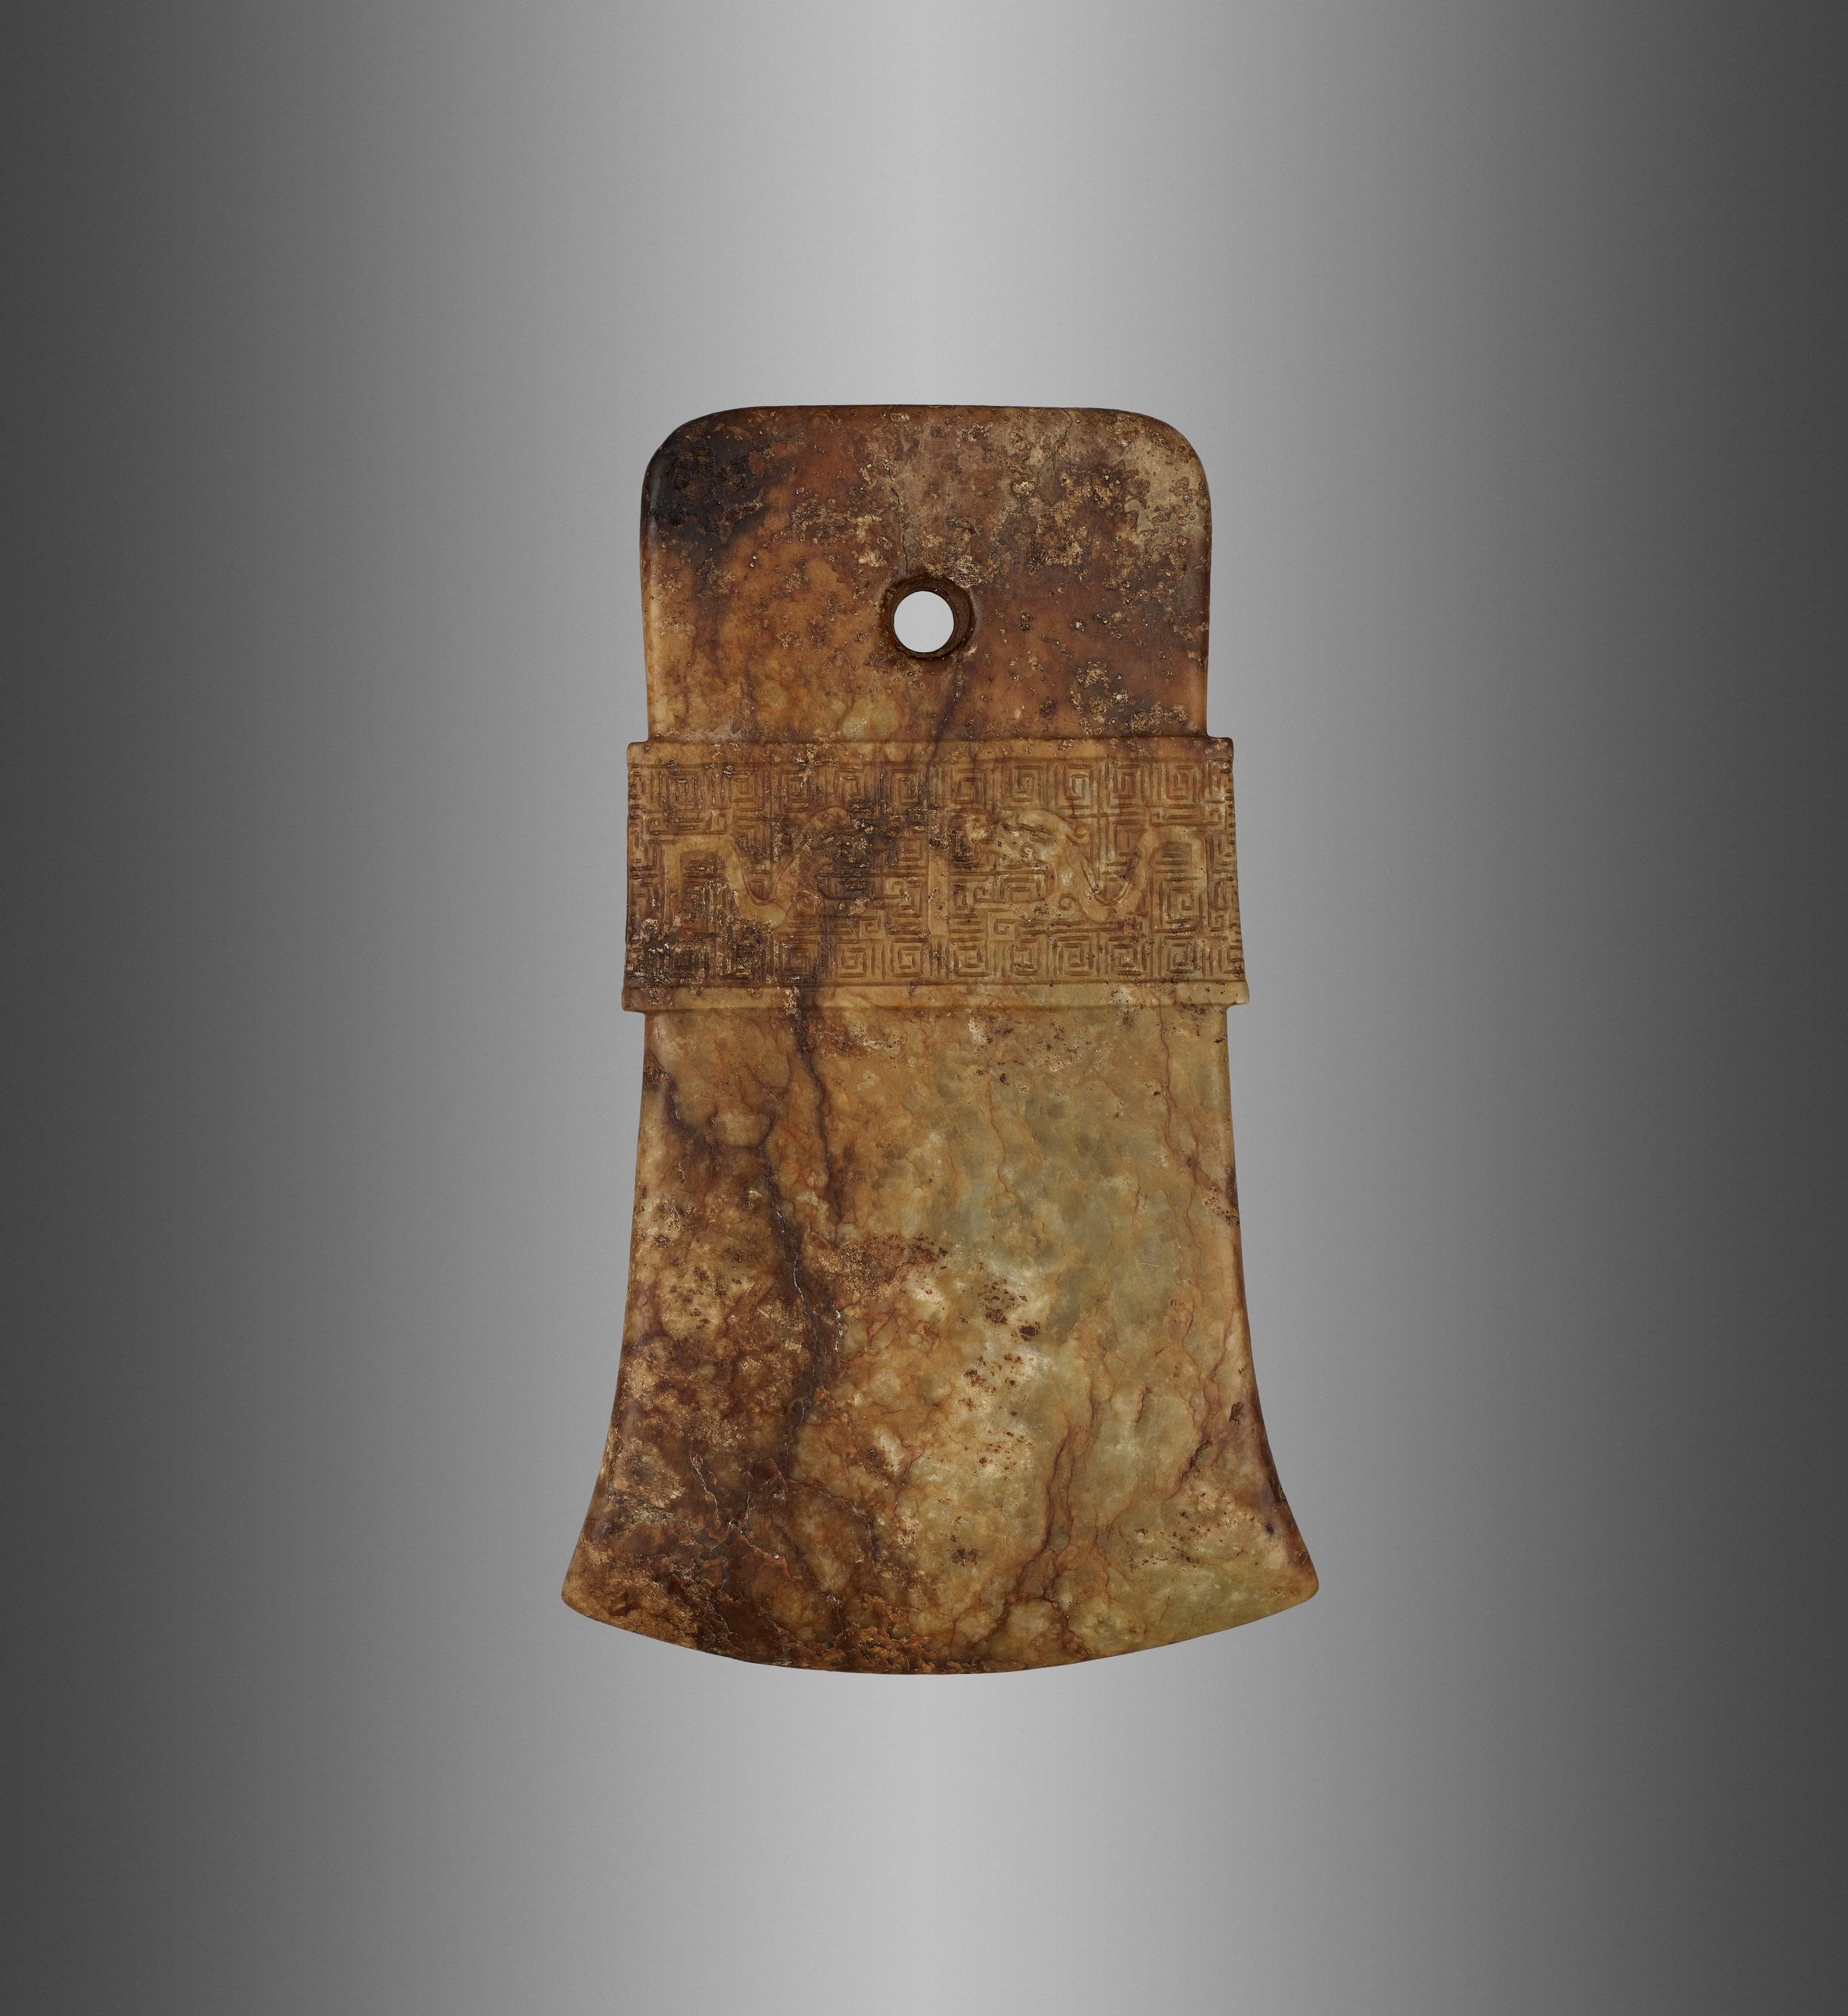 AN ARCHAISTIC RUSSET AND CELADON JADE AXE, QI, MING DYNASTY